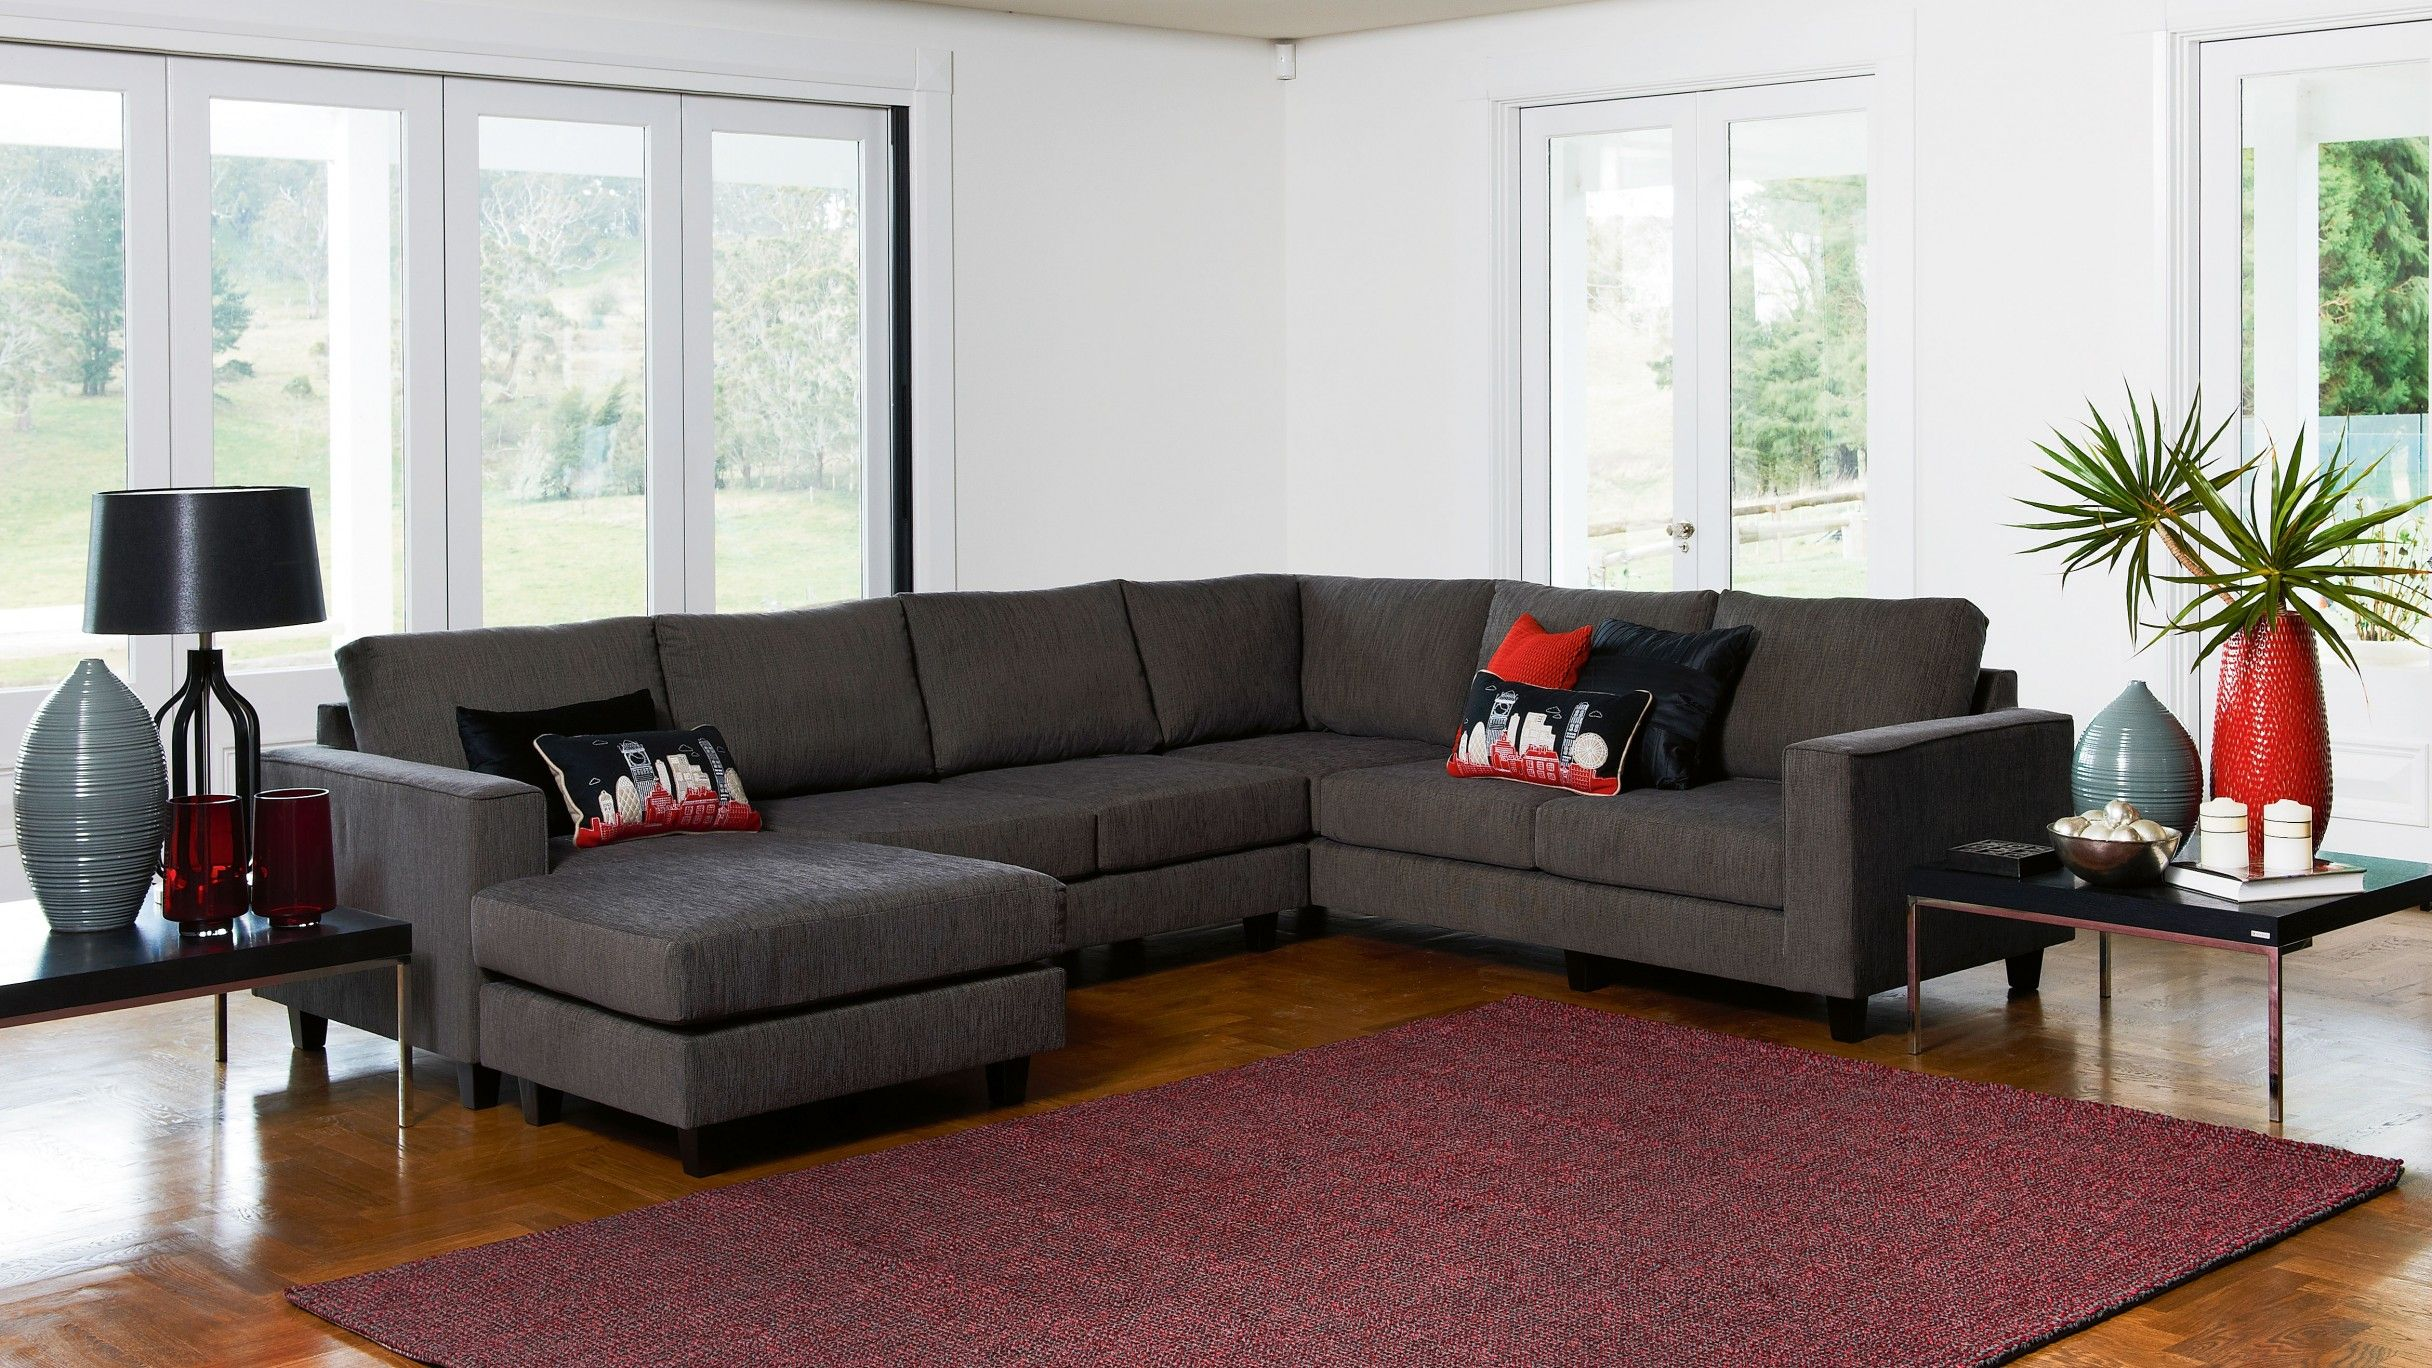 Yarra Corner Modular Lounge Suite with Chaise - Lounges & Recliners ...